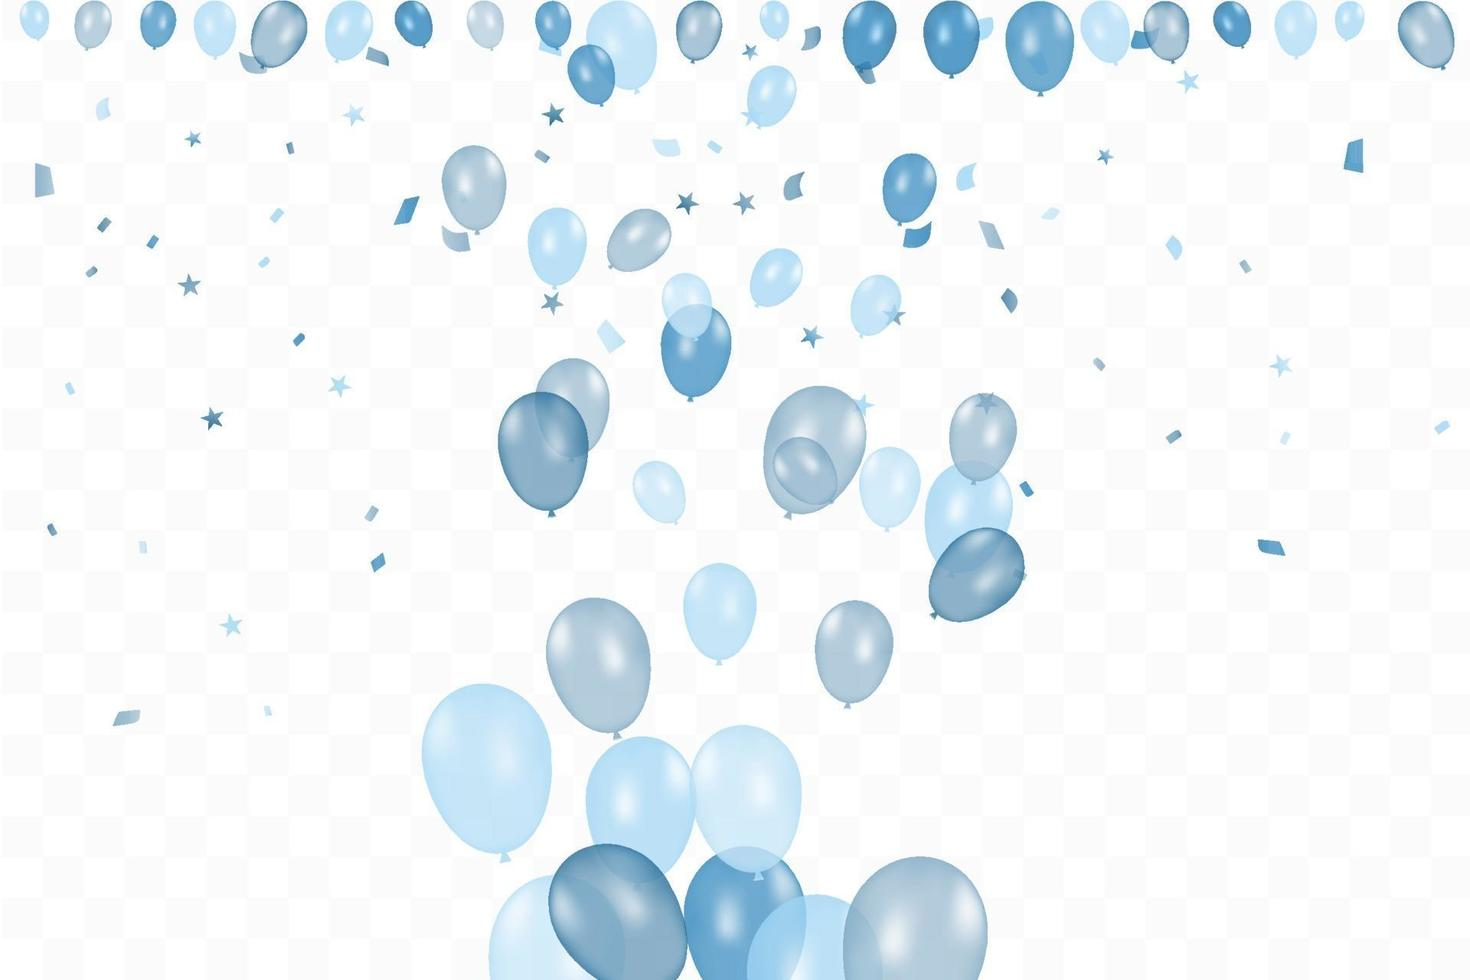 Boy's birthday. Happy Birthday Background With blue Balloons And Confetti. Celebration Event Party. vector